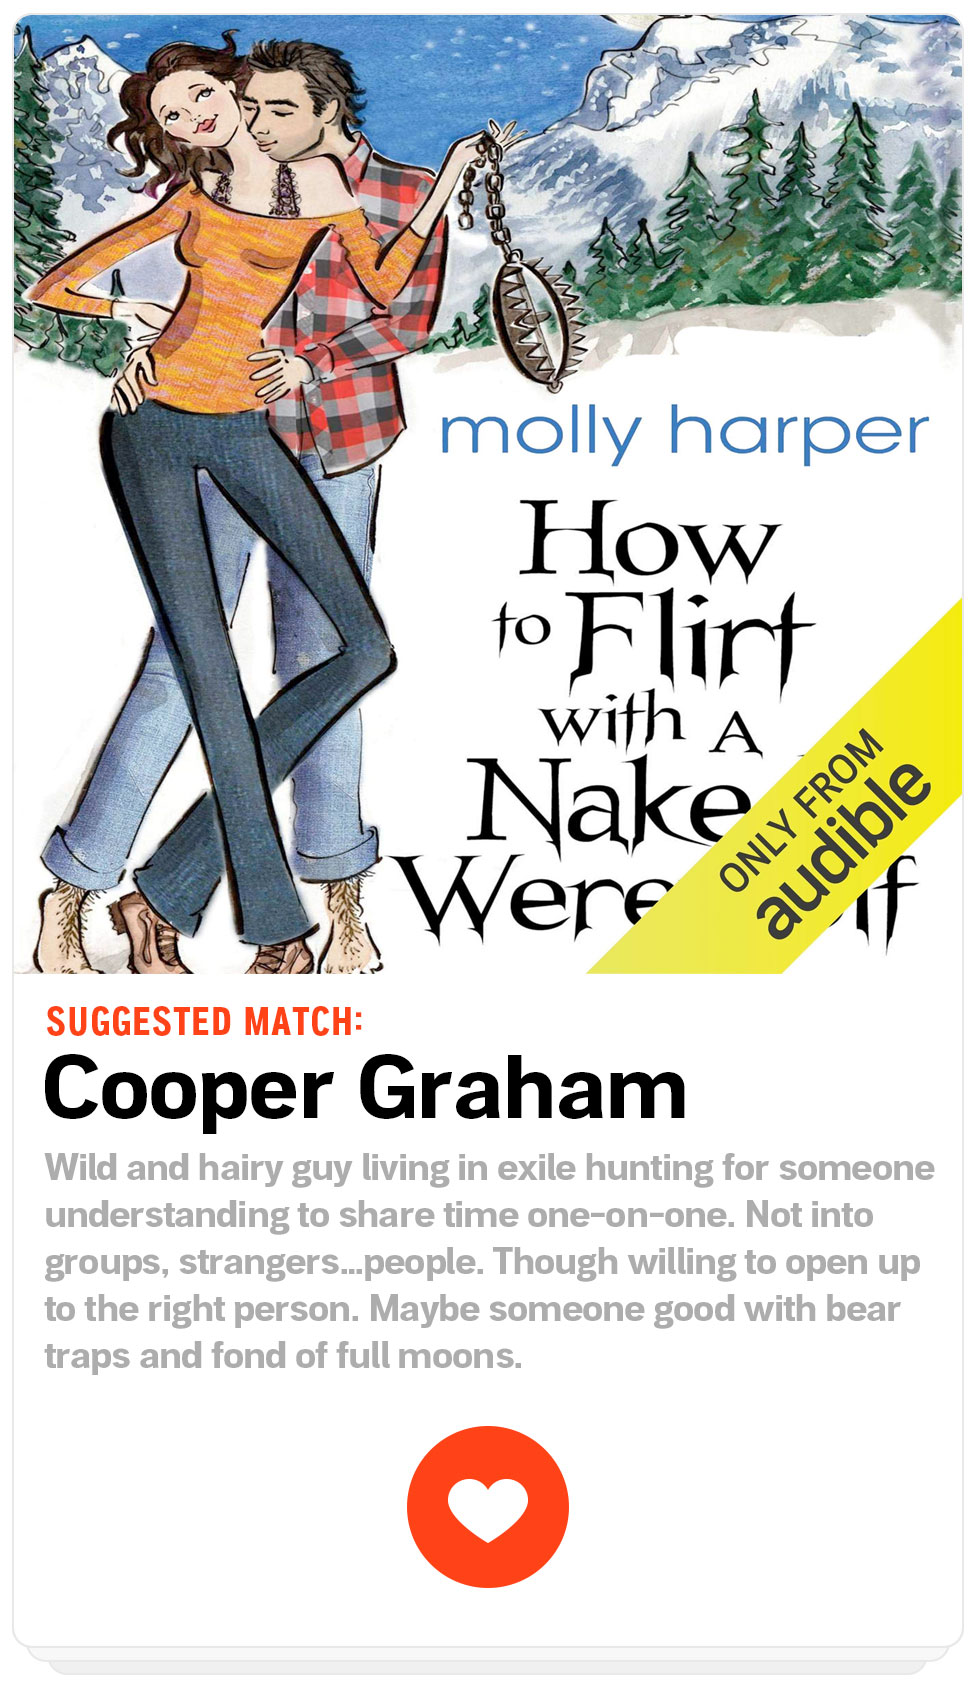 Suggested Match: Cooper Graham